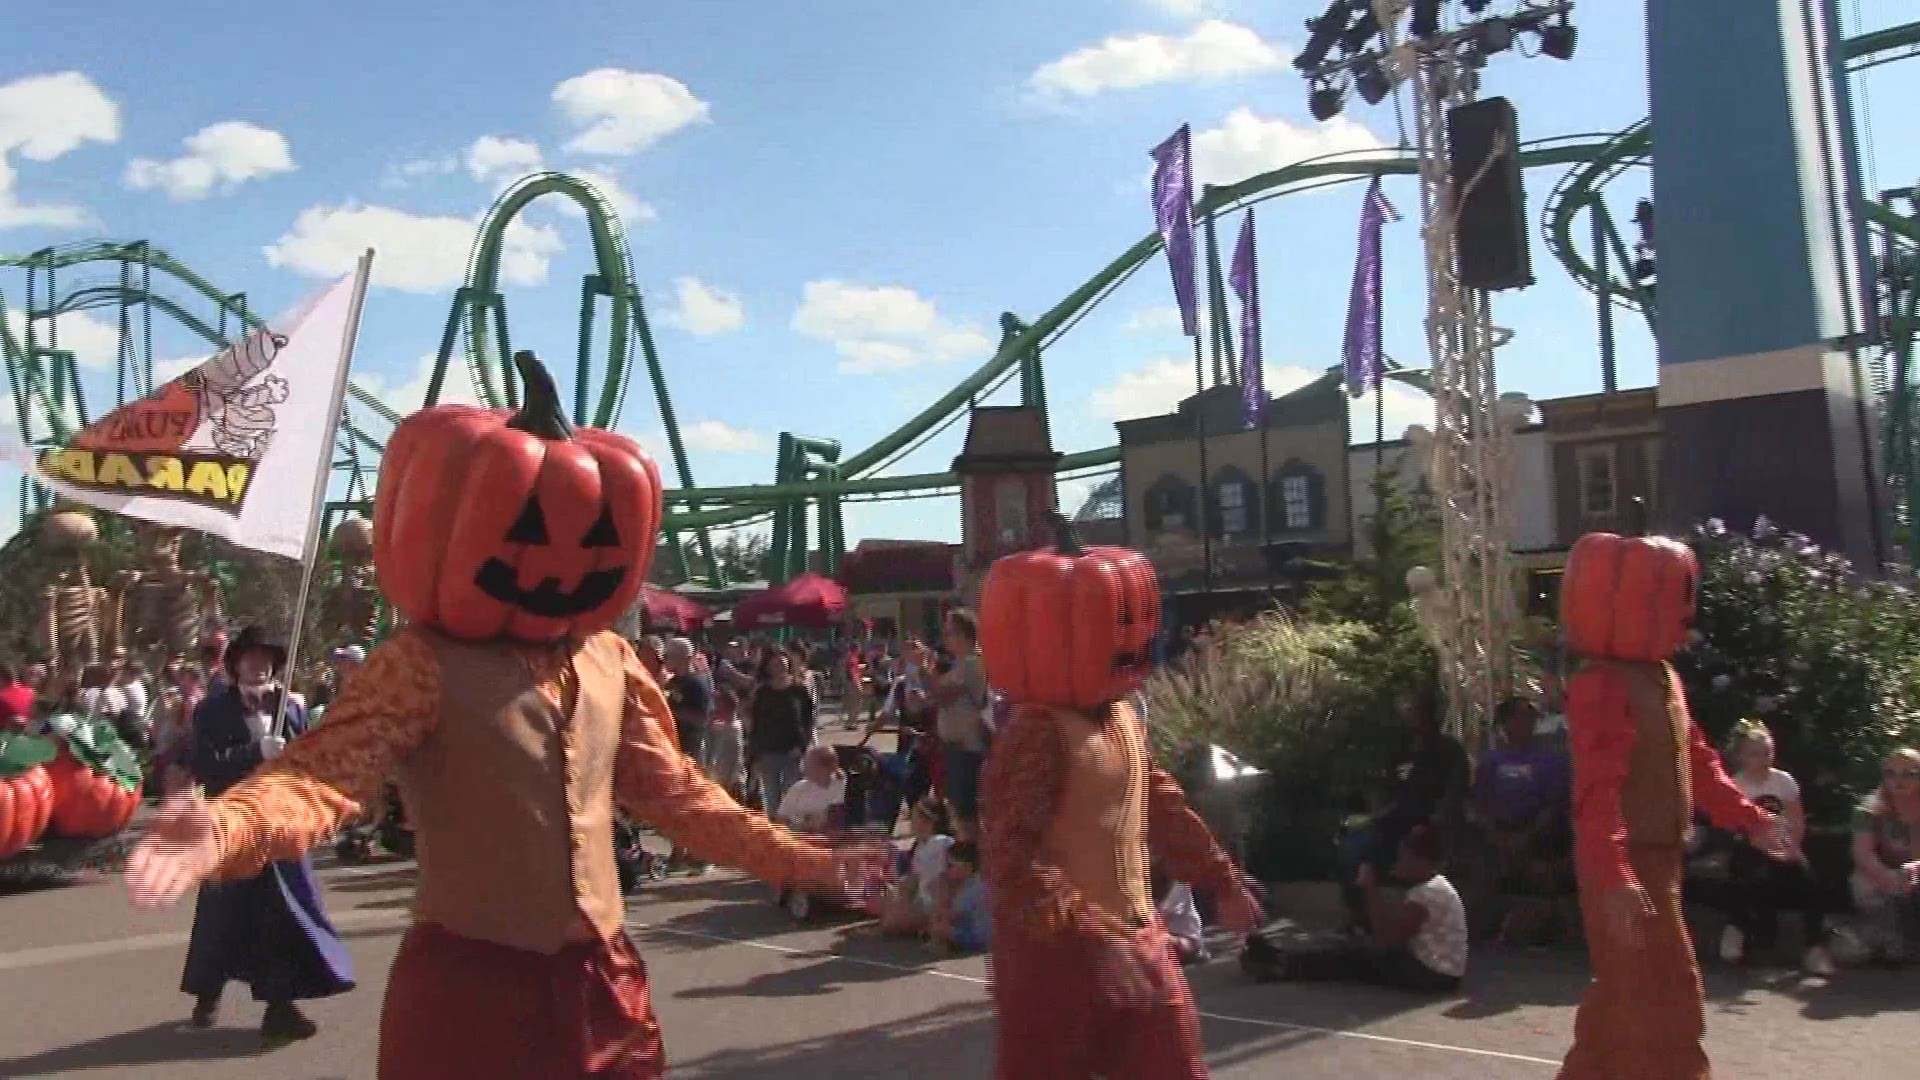 Halloween Events In Buffalo Ny 2020 What is replacing HalloWeekends at Cedar Point? New event planned